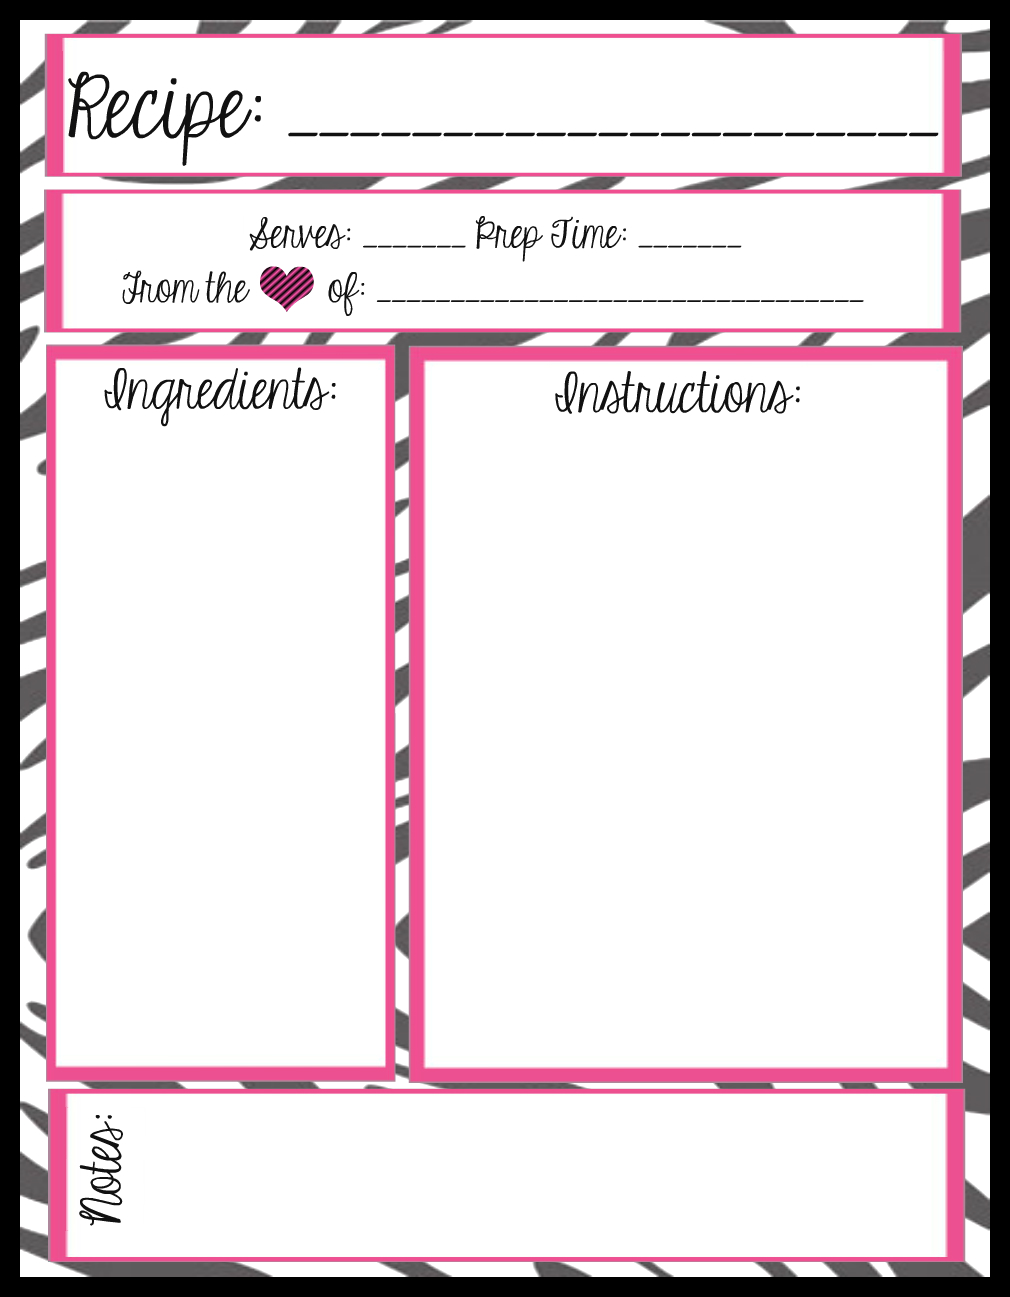 Full Page Recipe Templates [Free Printables]  Free Recipe Templates